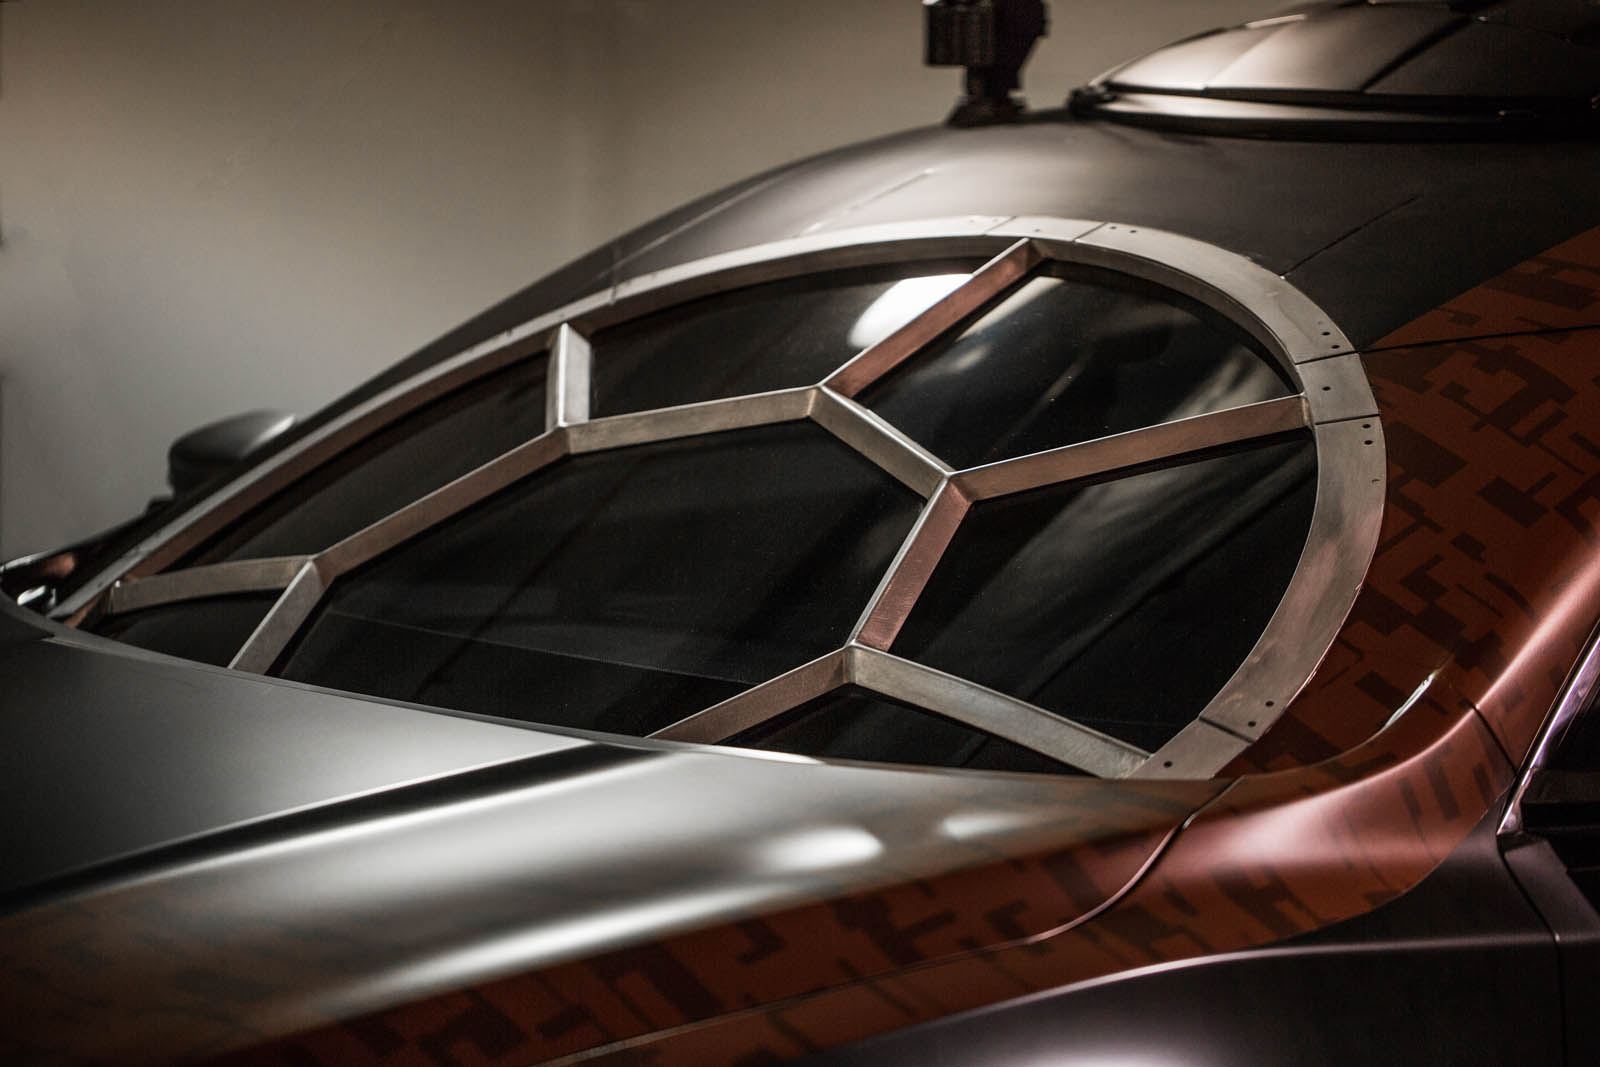 The Special Forces TIE Fighter is fittingly recreated using Nissan's best-selling sedan, Altima. The vehicle's stand out feature is the cockpit window that brings the multi-paned look of the Special Forces TIE fighter to the Altima's windshield.